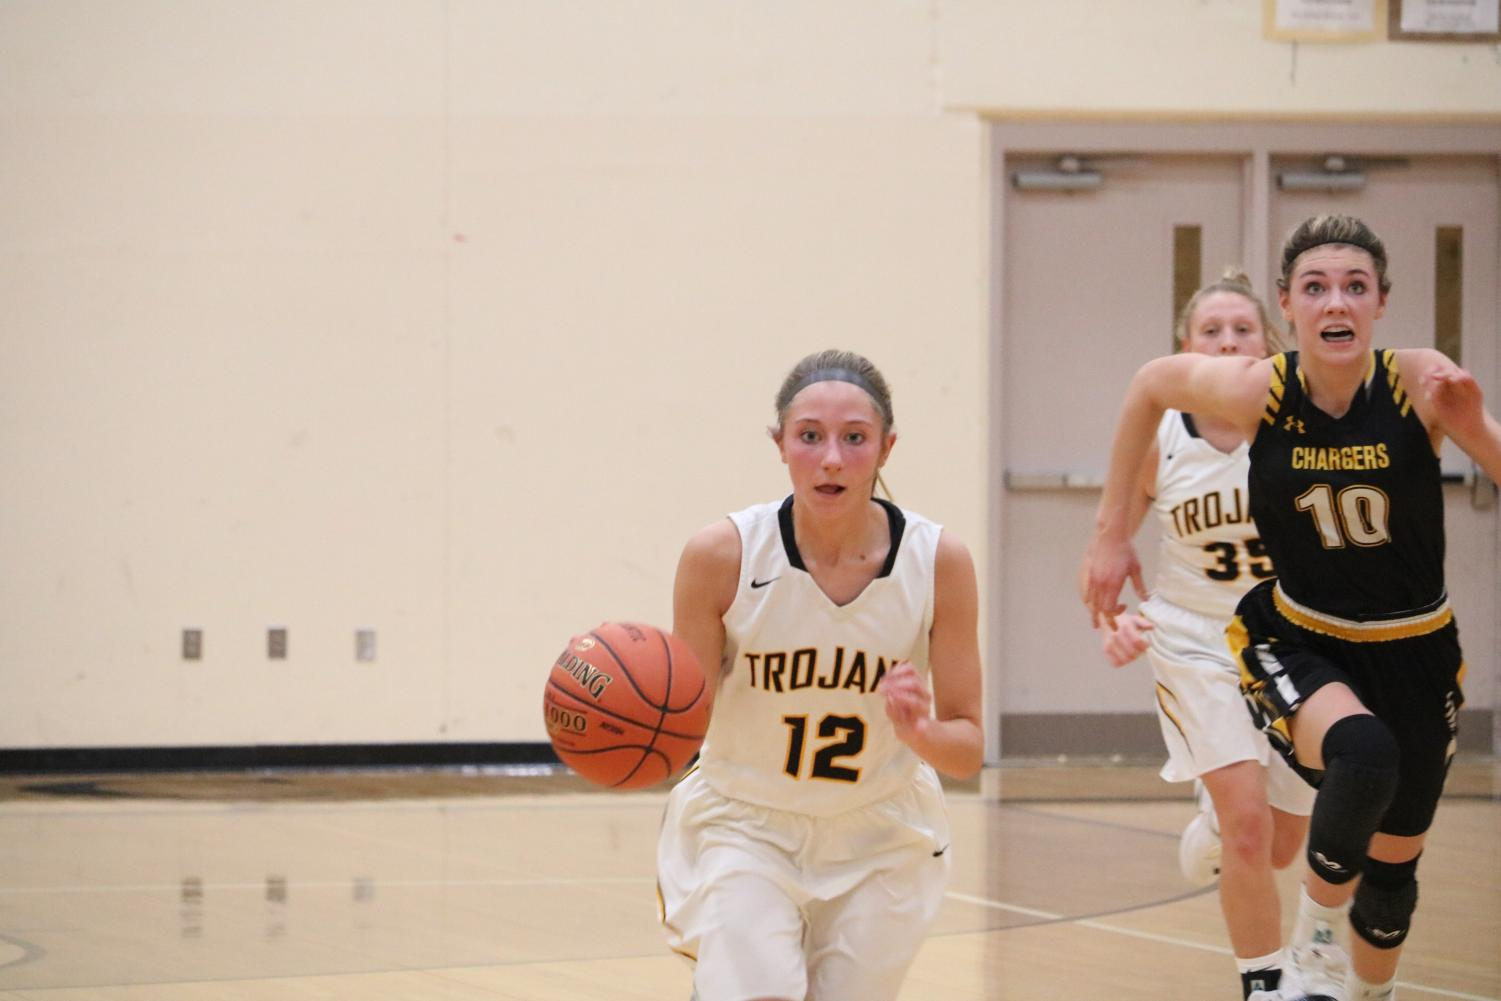 Junior Haley Rasmussen races down the court last season. Rasmussen has played on the varsity team since her freshman year.